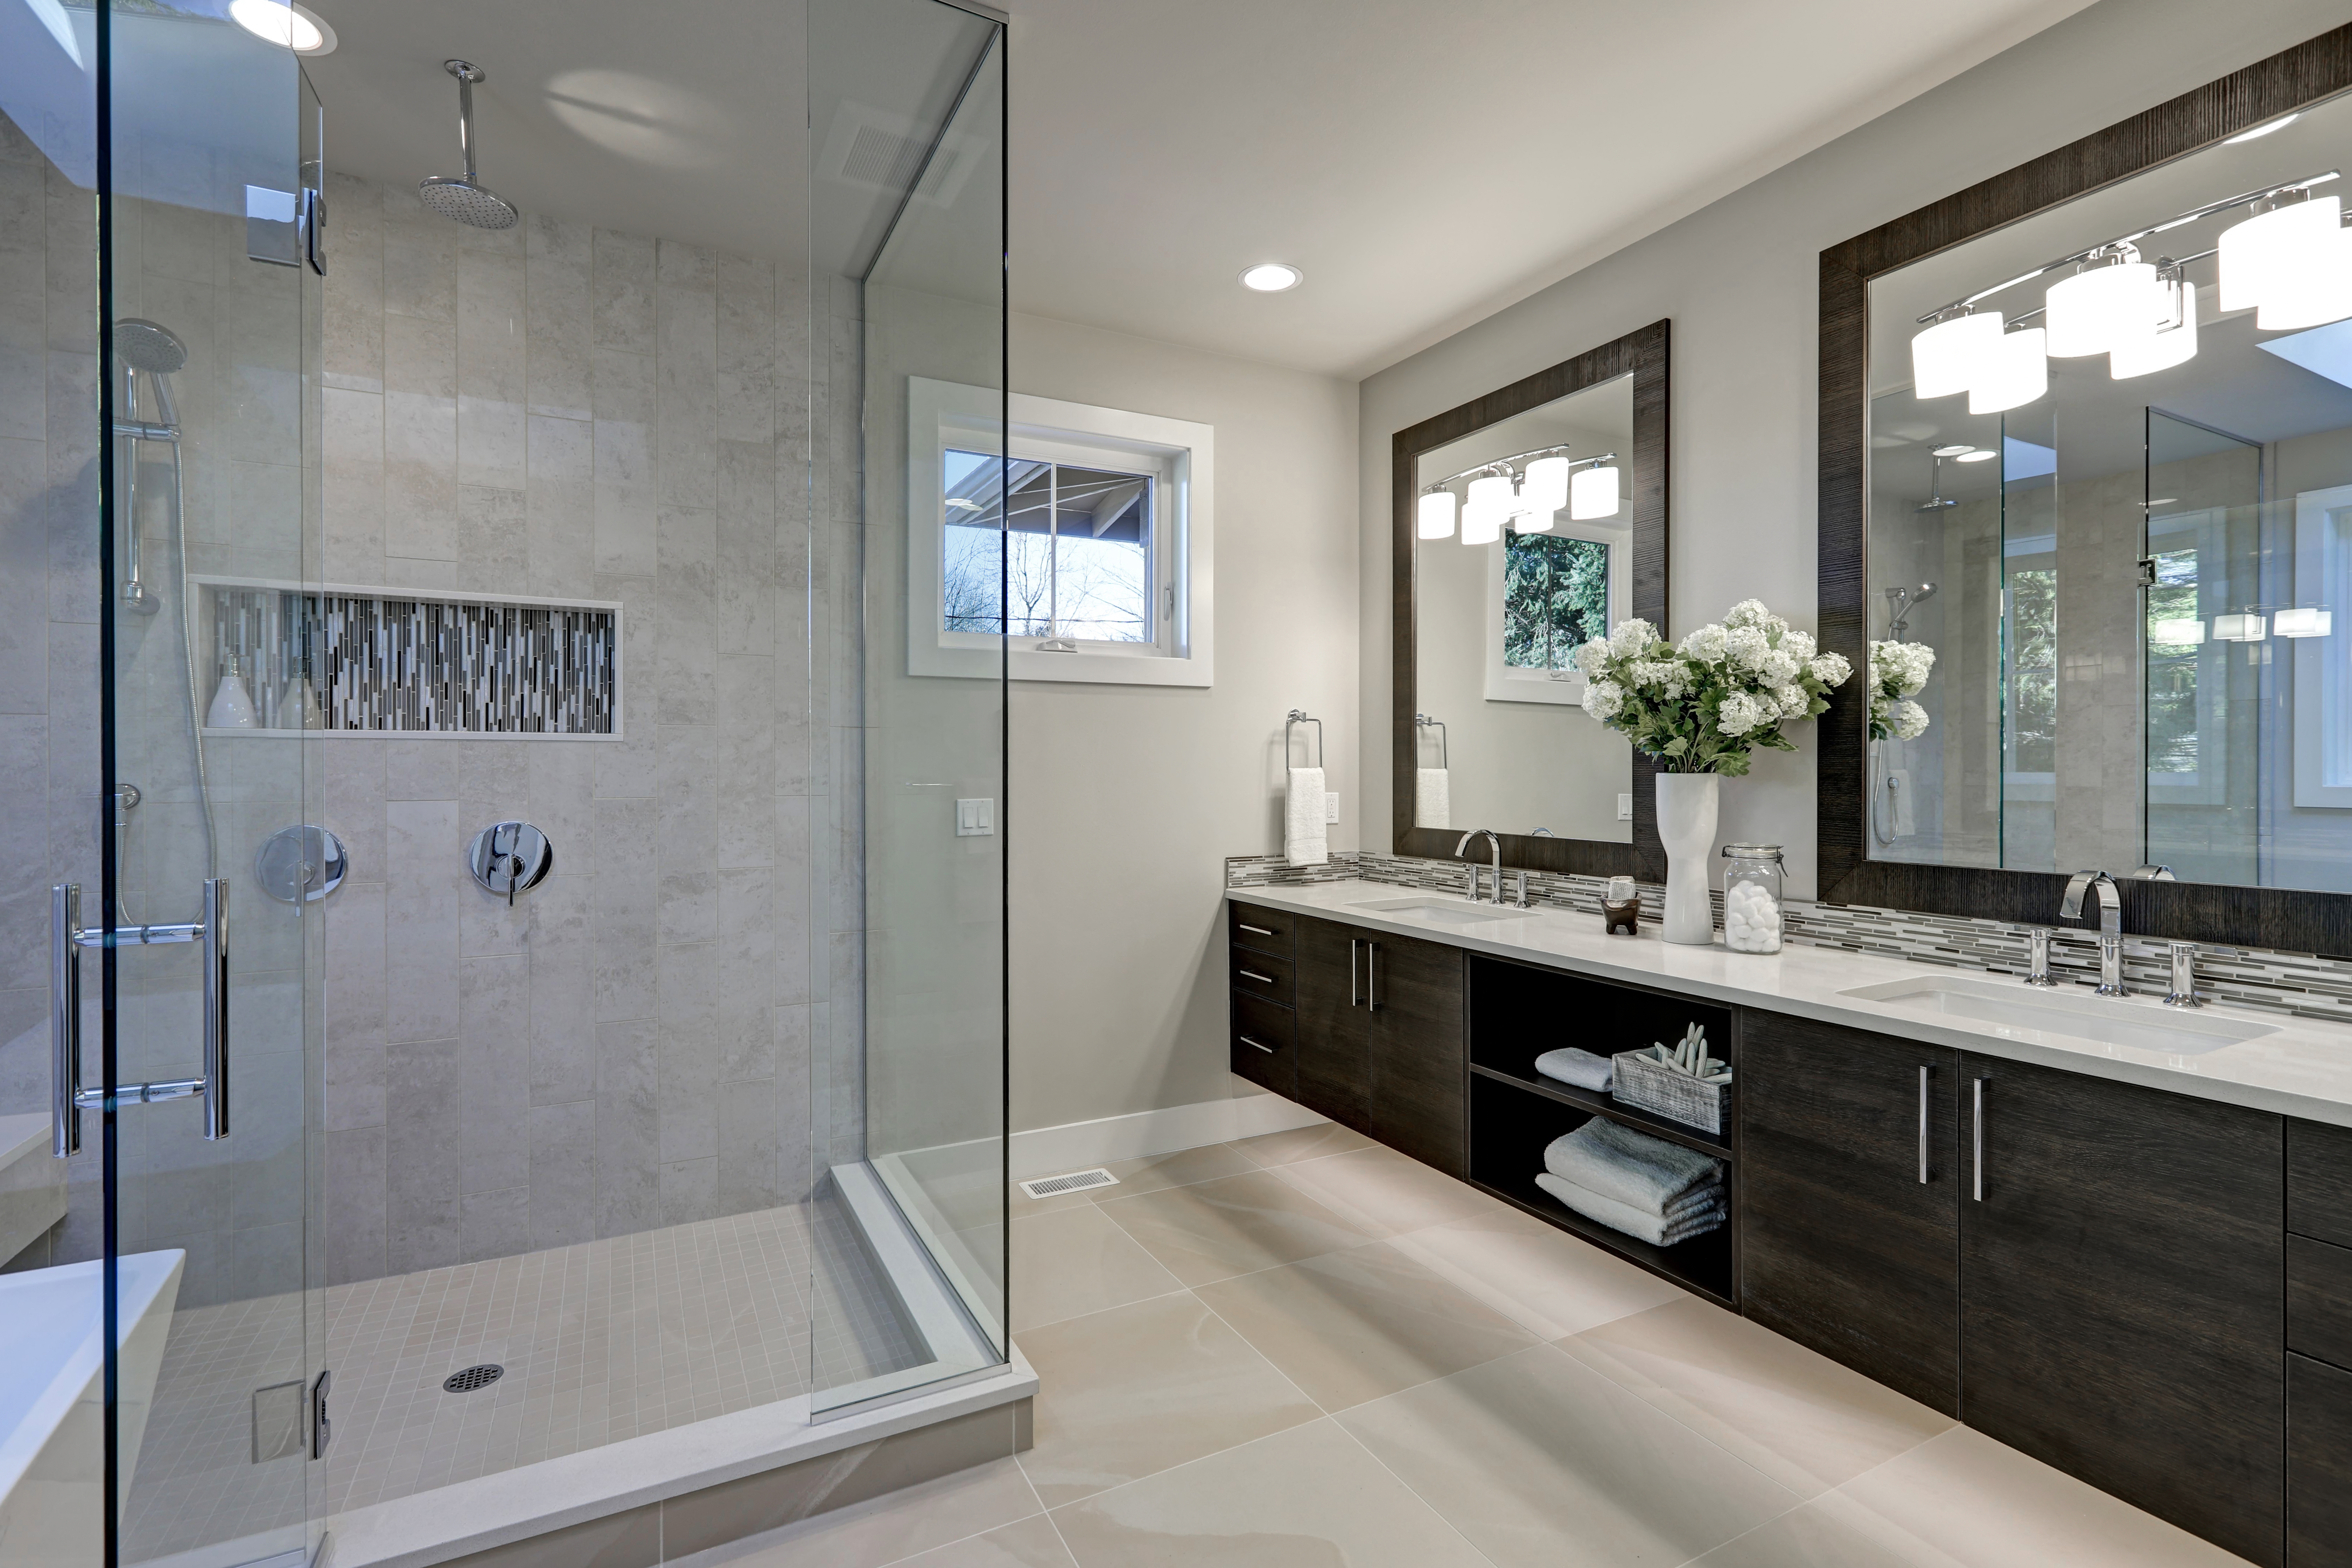 Spacious bathroom in gray tones with heated floors walk-in shower double sink vanity and skylights. Northwest USA